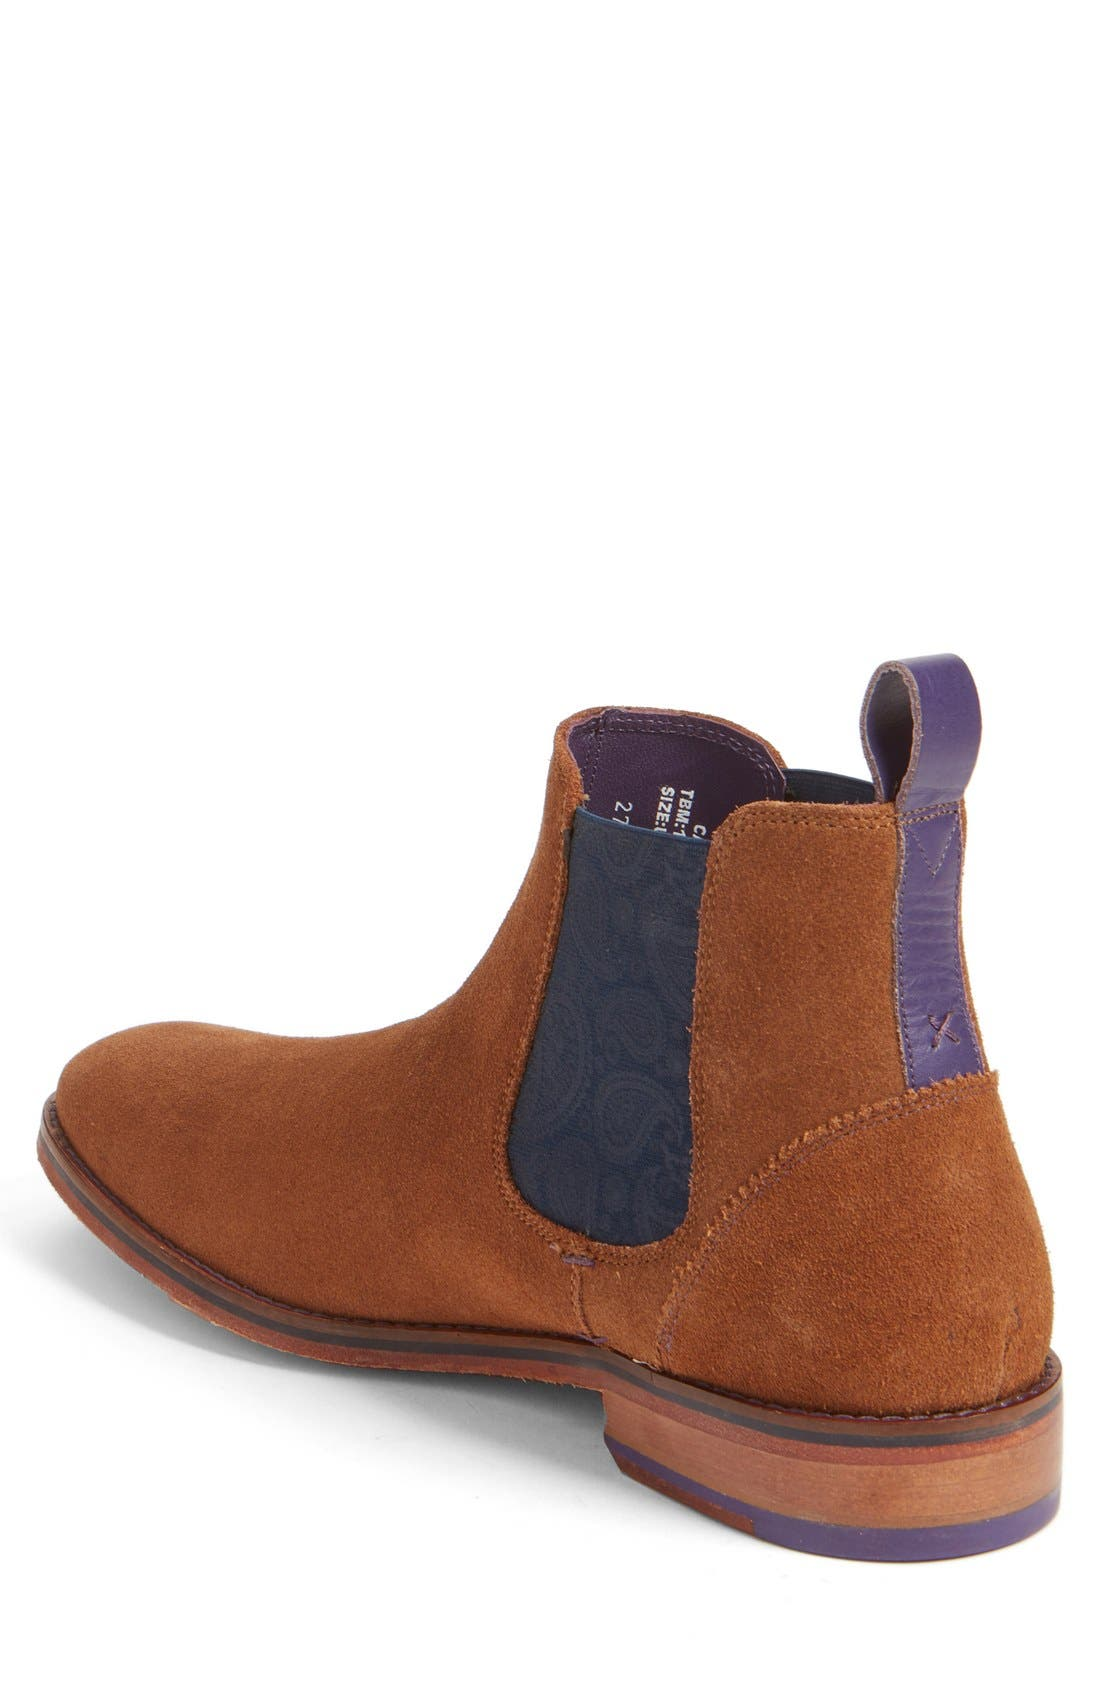 'Camroon 4' Chelsea Boot,                             Alternate thumbnail 11, color,